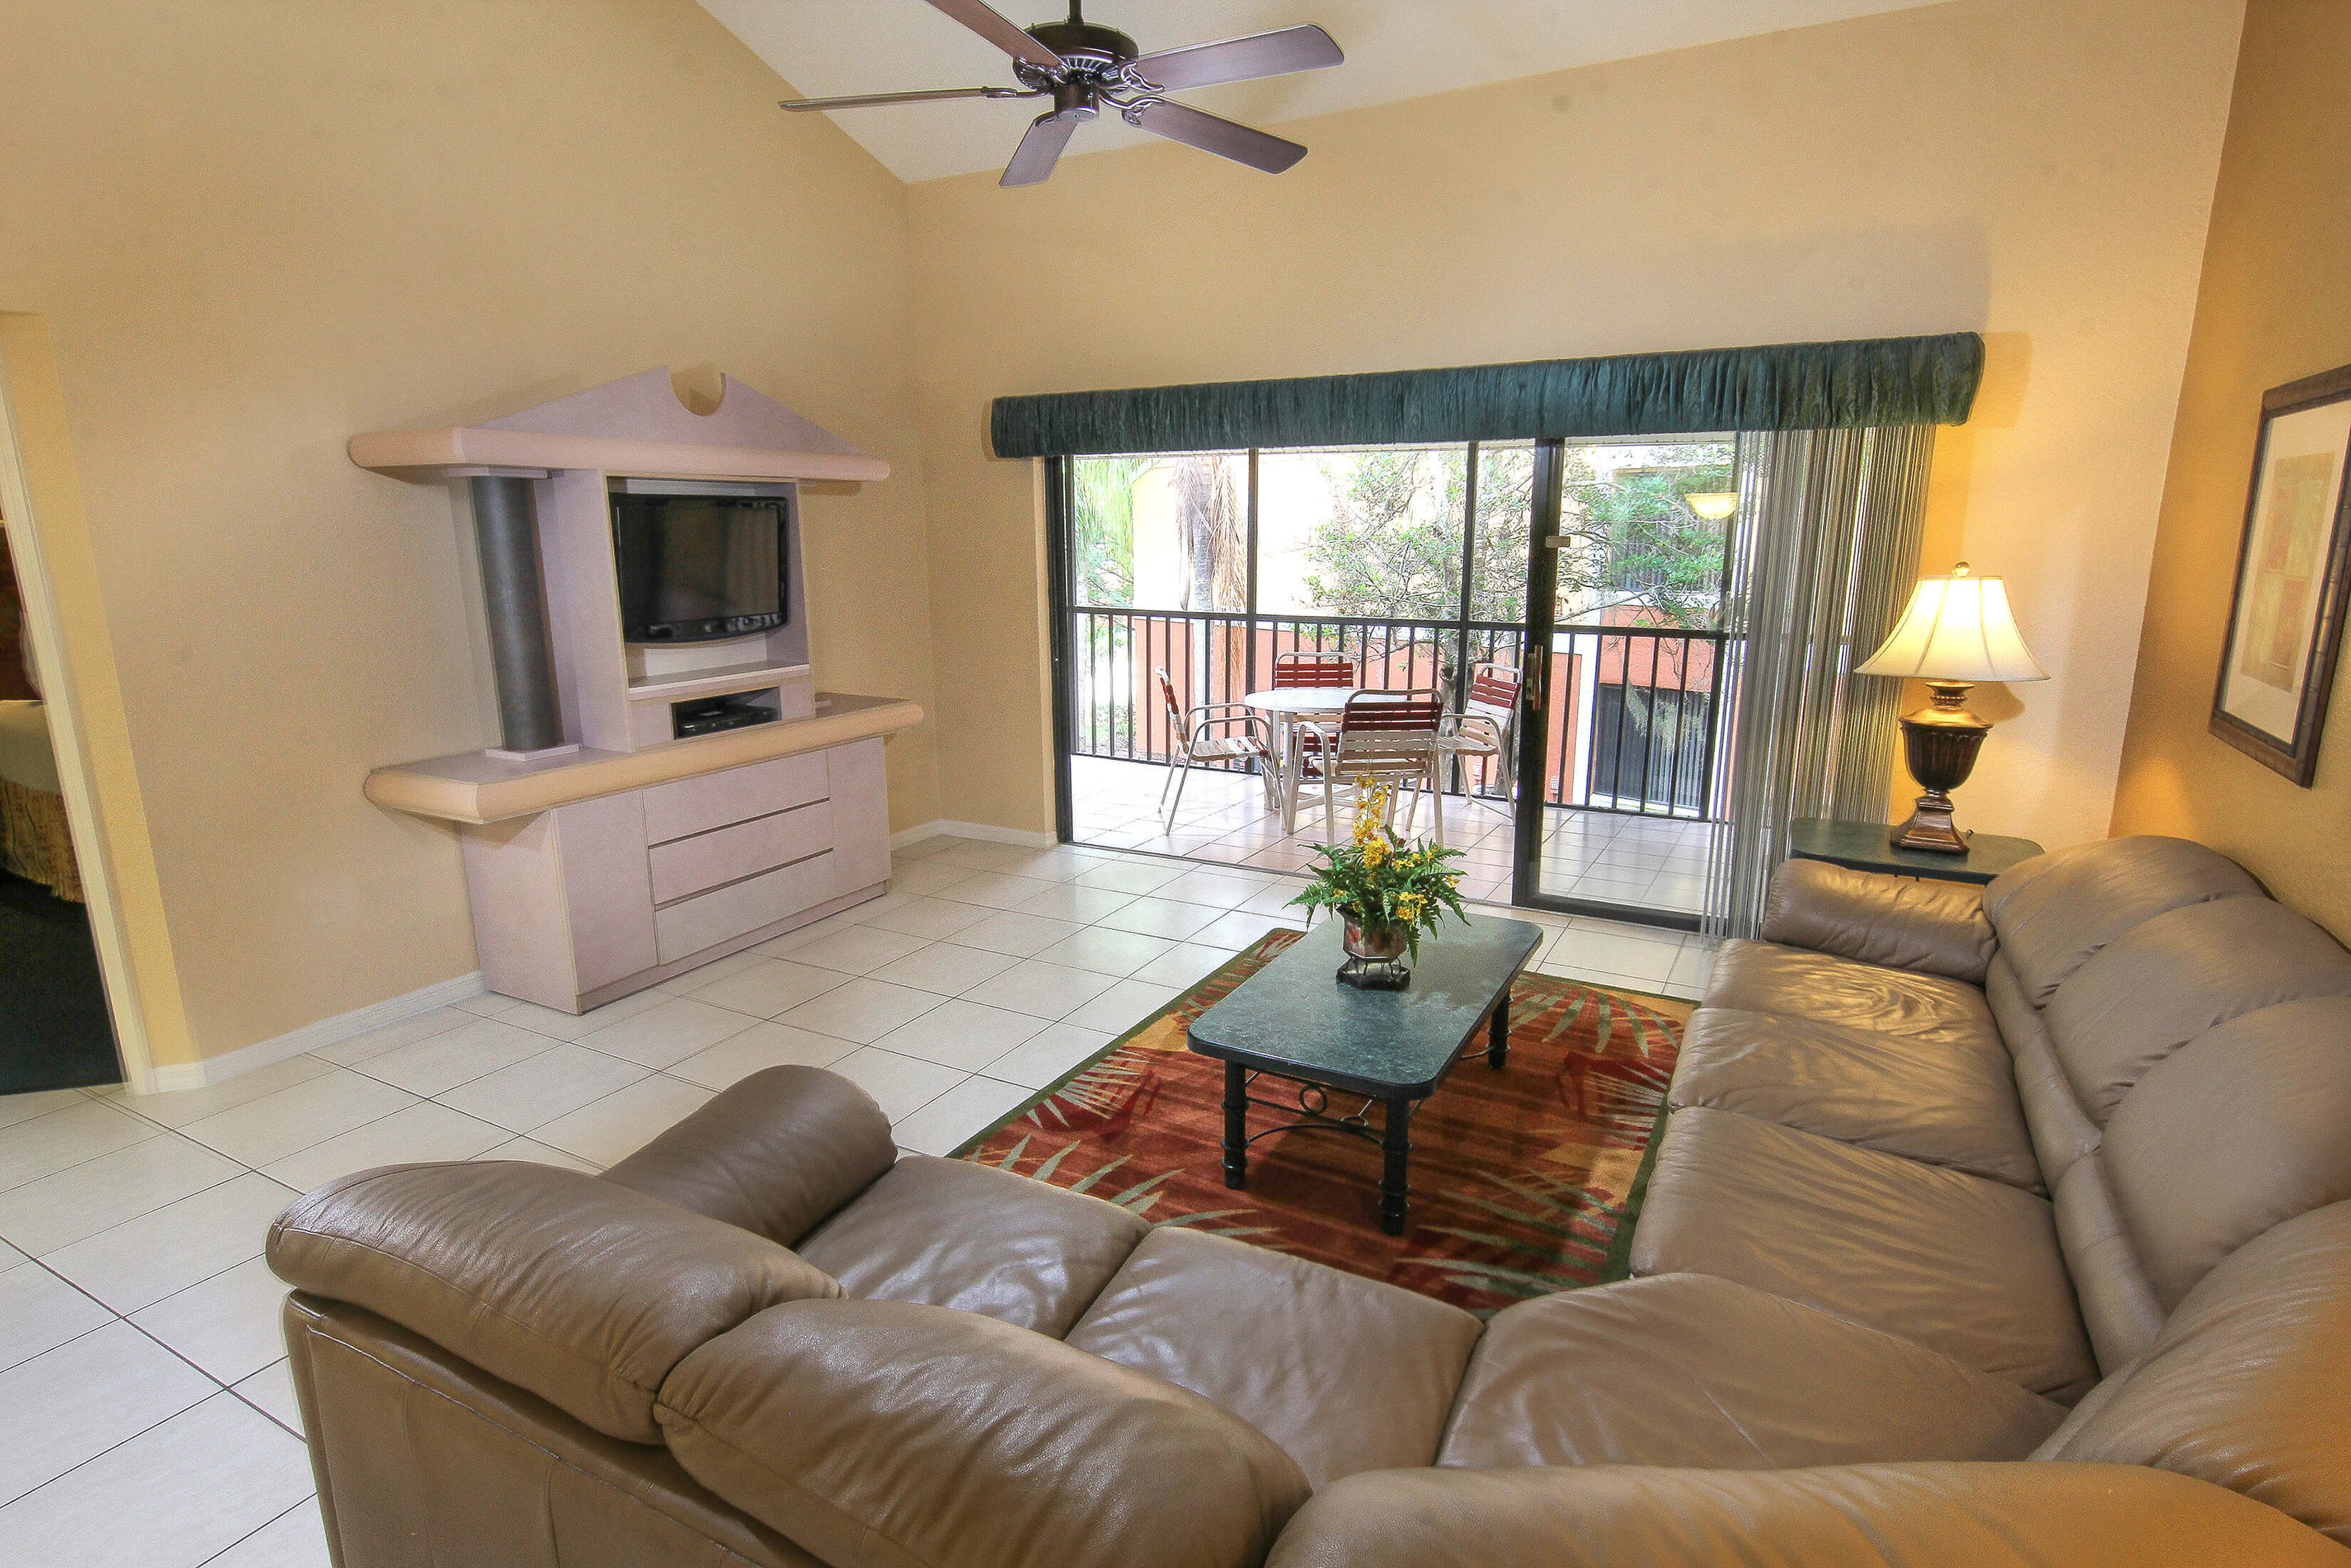 Living Area with Couch and TV | Westgate Vacation Villas Resort & Spa | Orlando, FL | Westgate Resorts